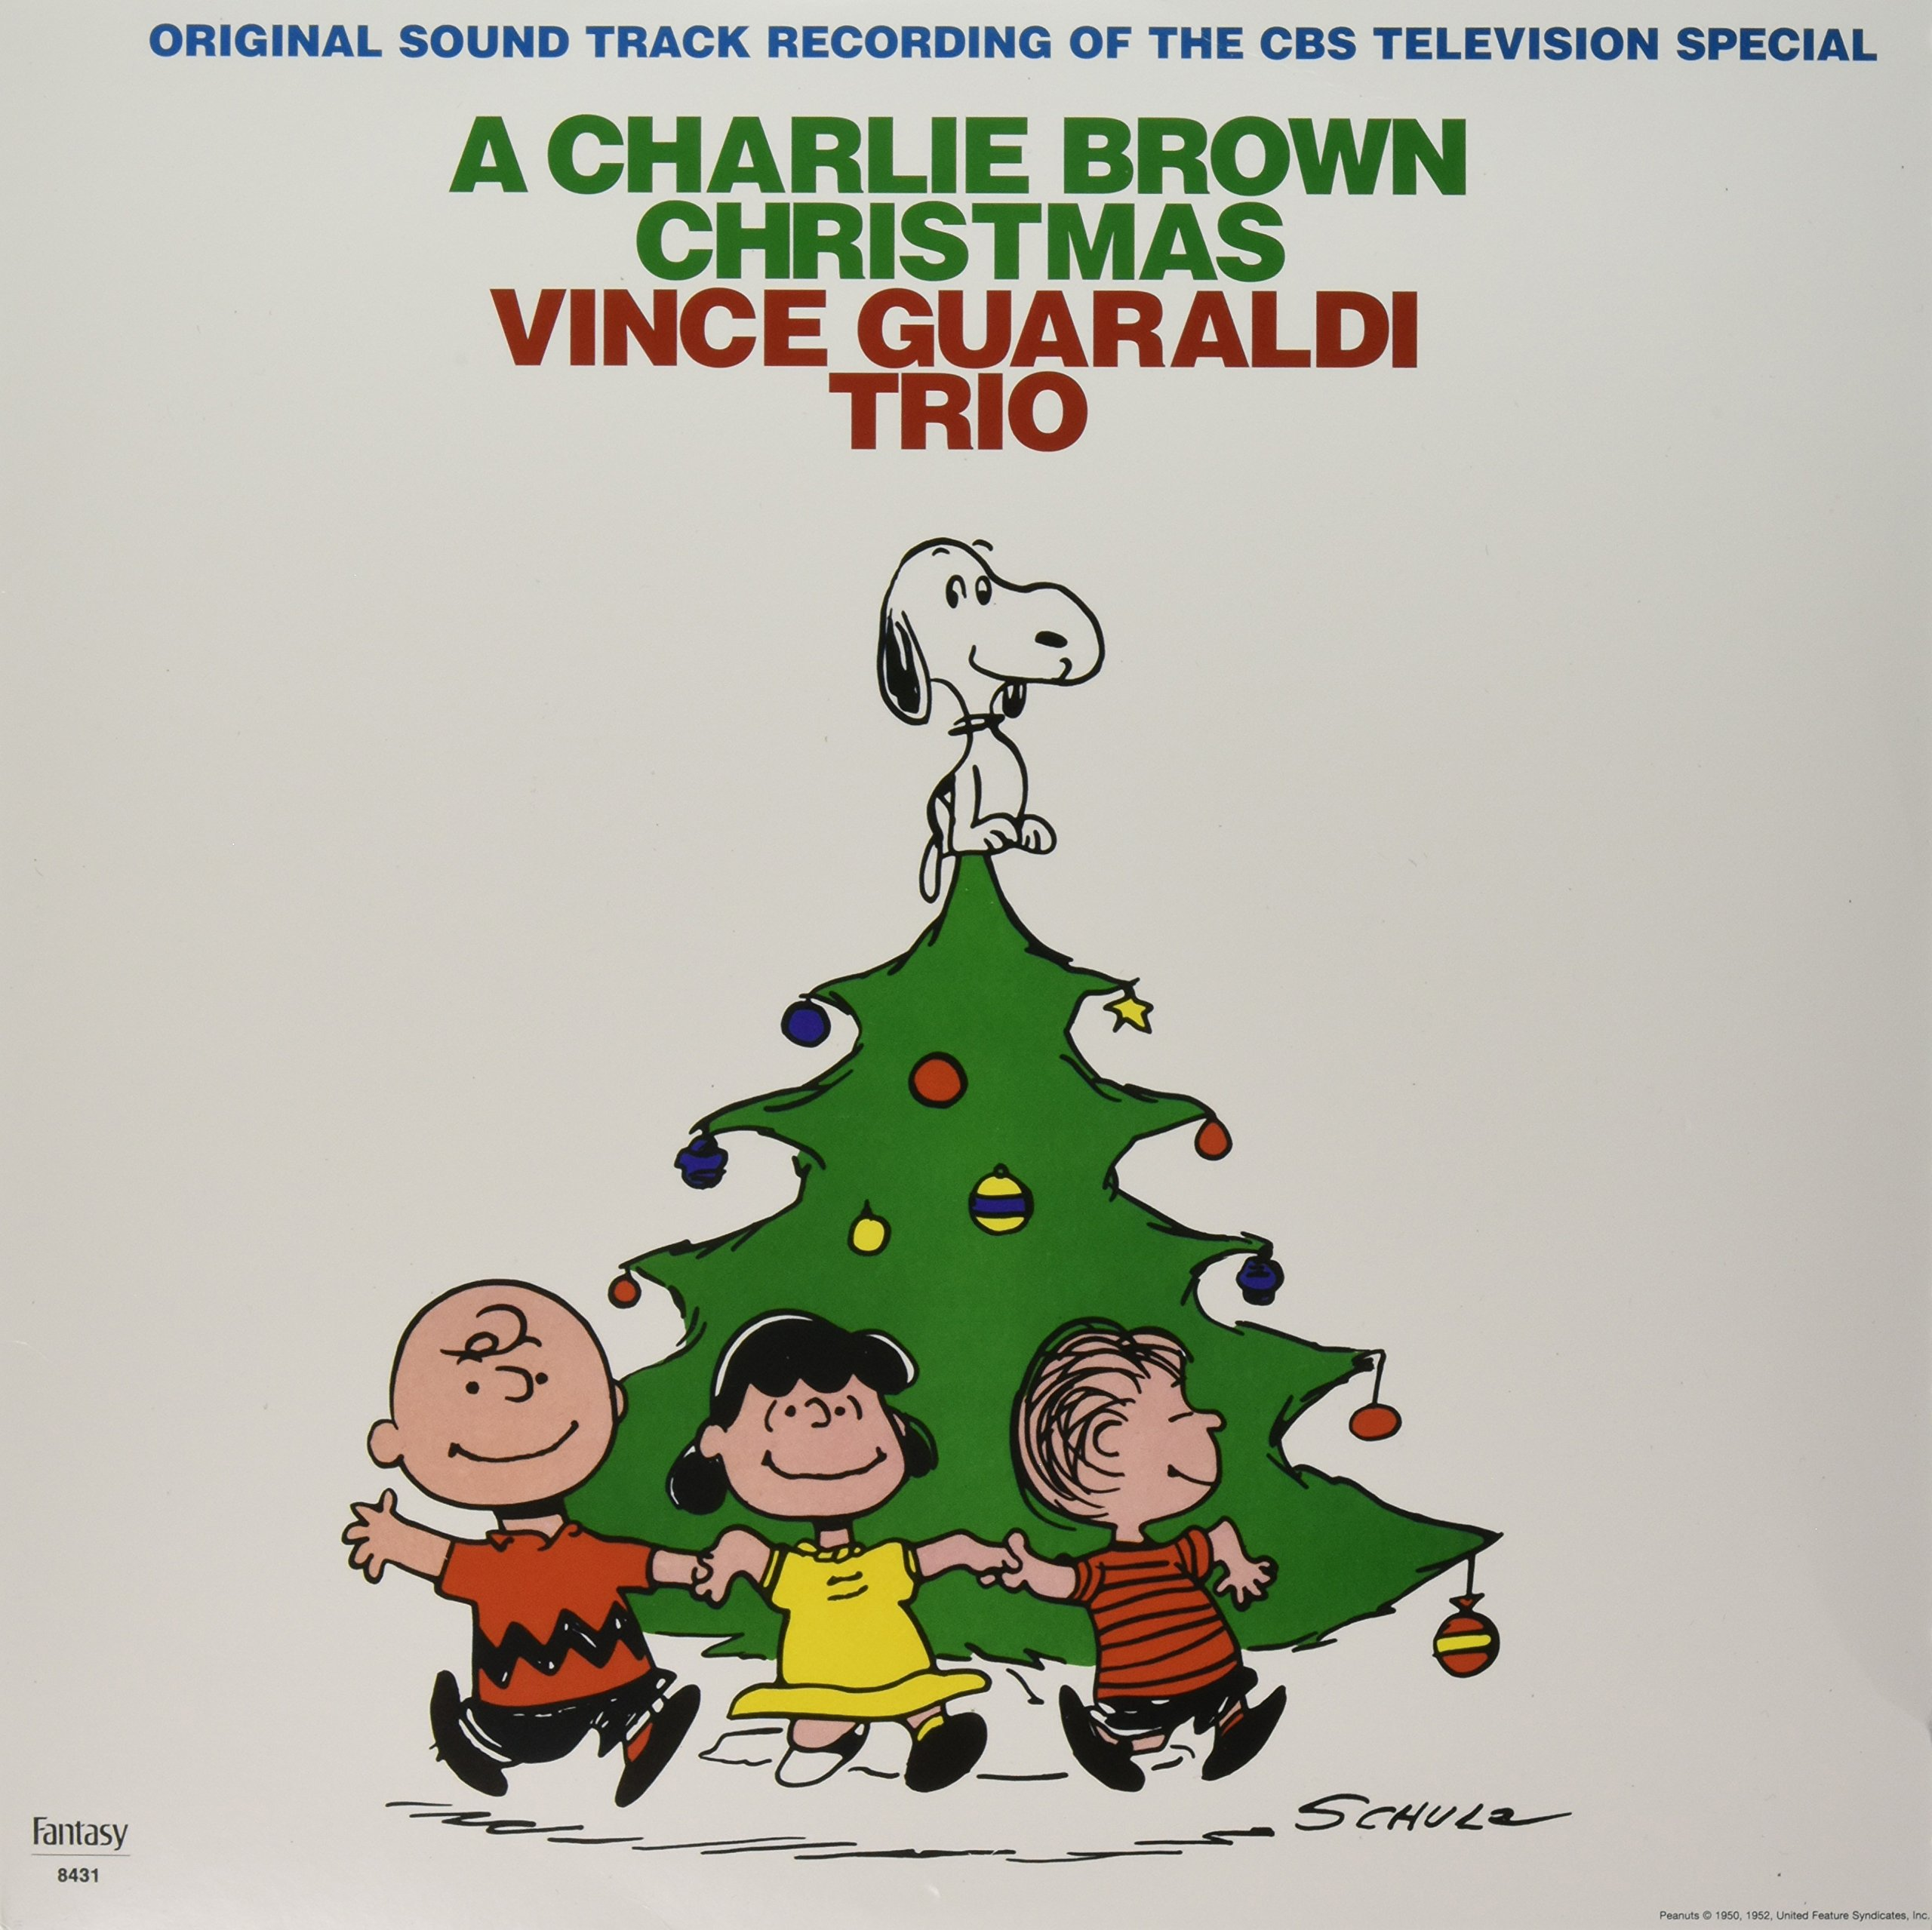 A Charlie Brown Christmas [Green Vinyl] by VINYL